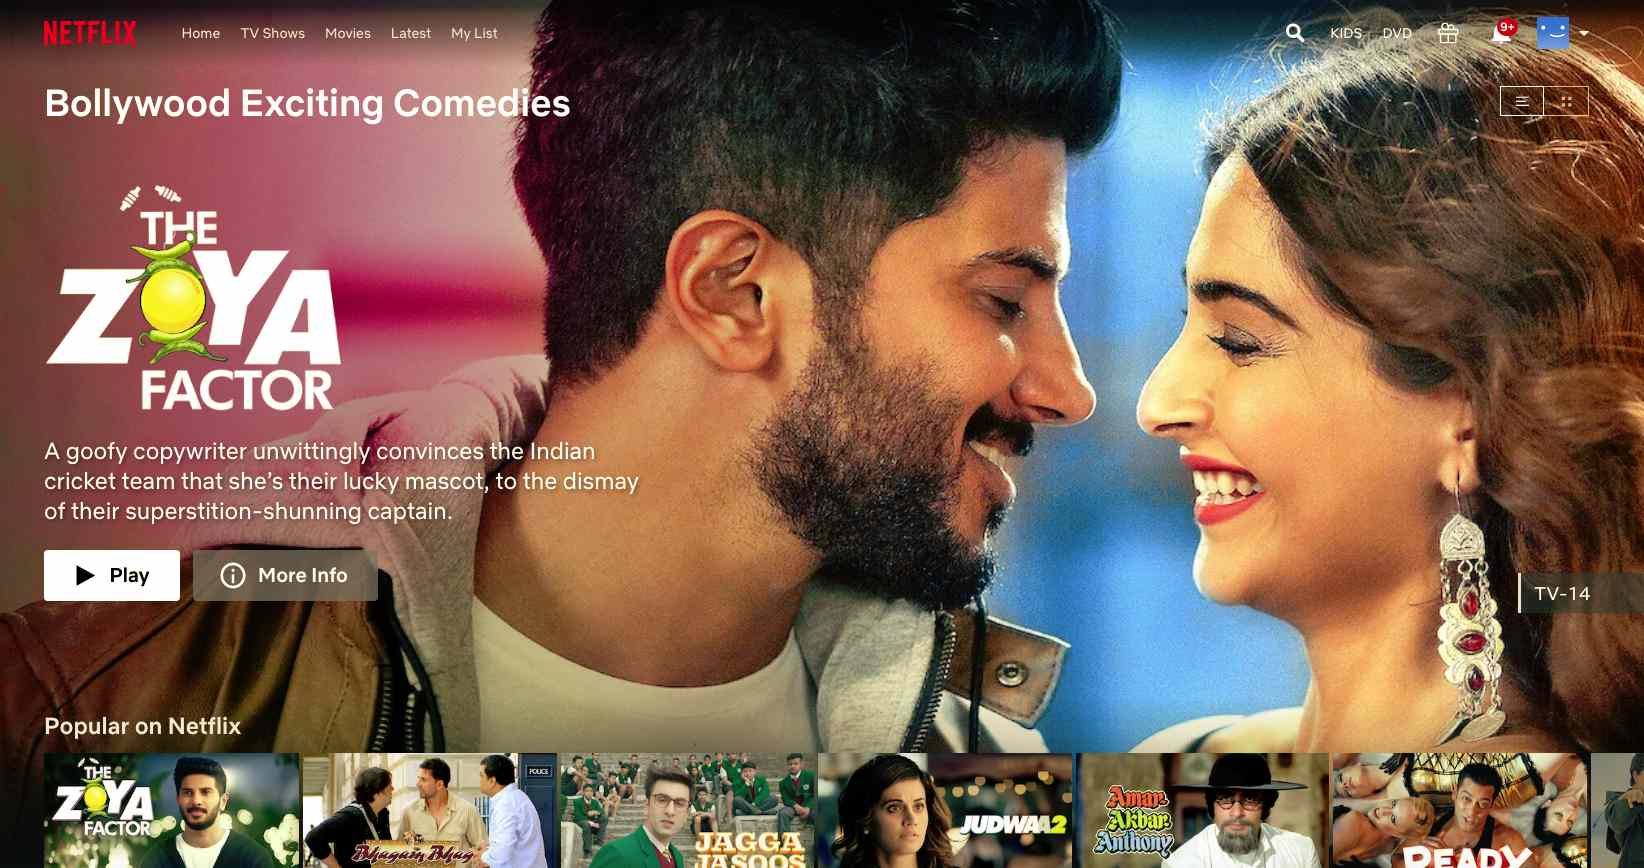 Bollywood movies opened up with Netflix secret codes